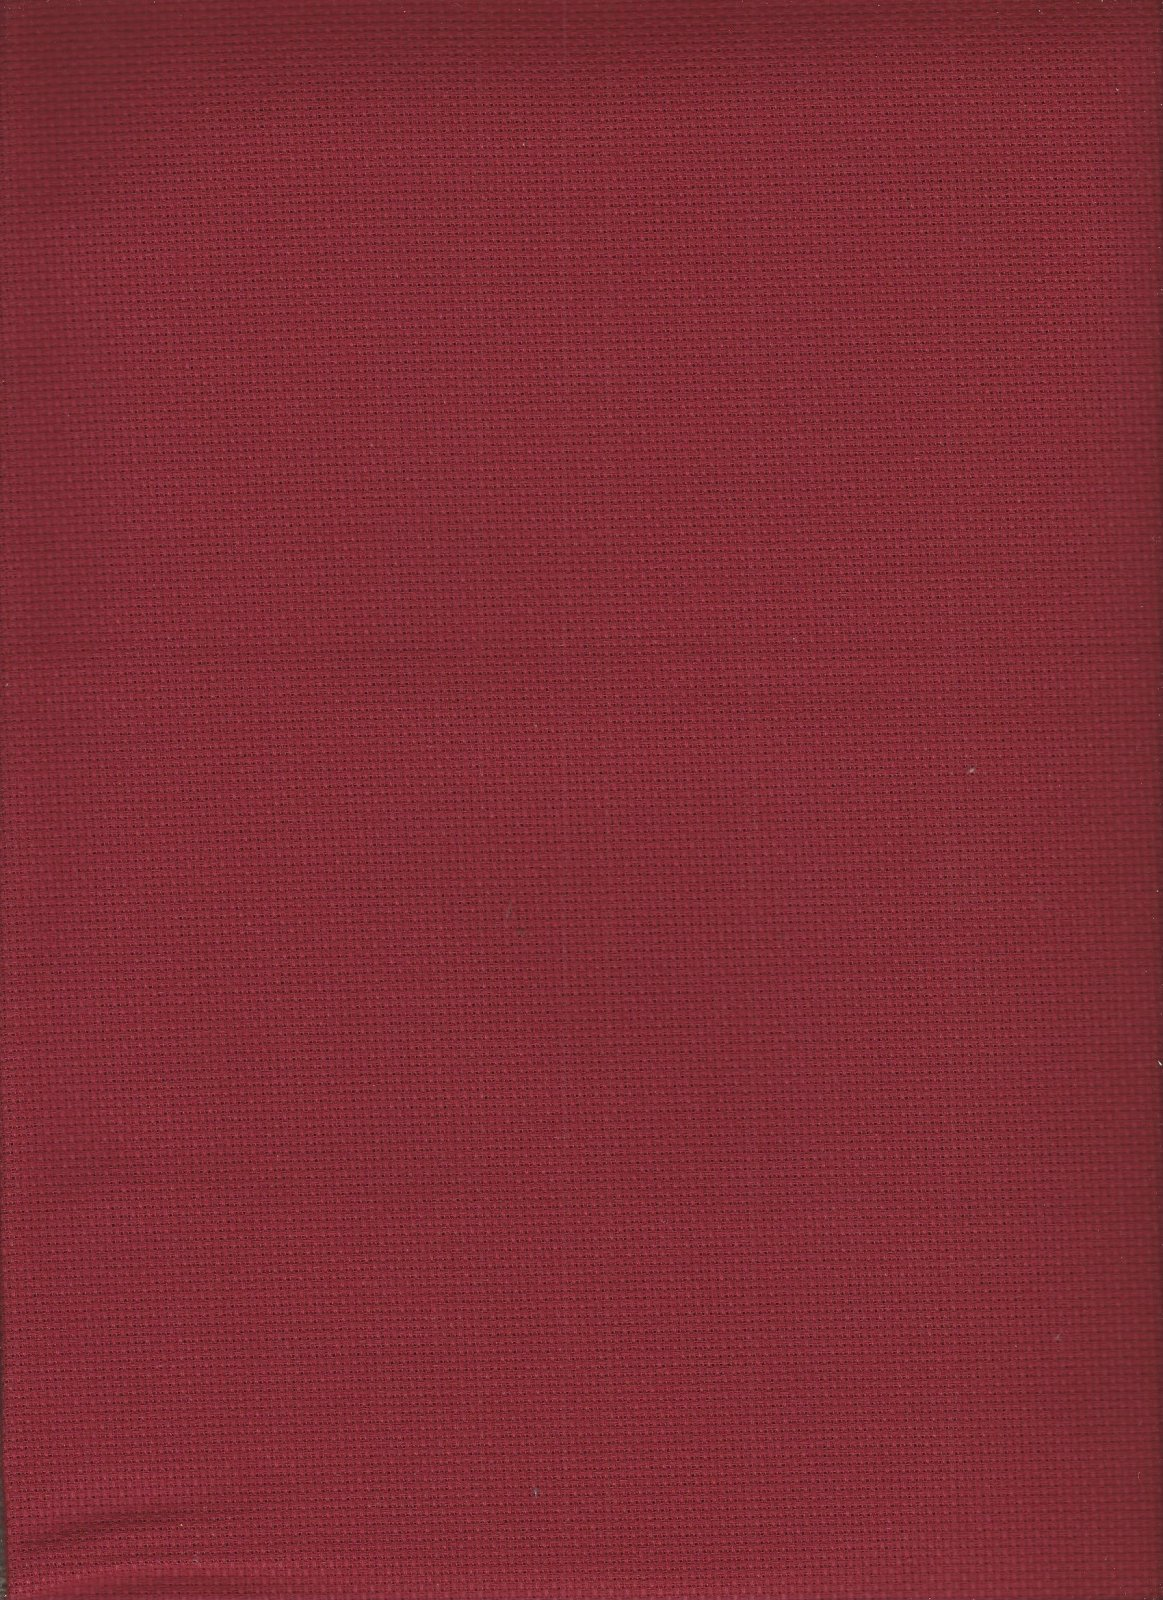 Aida 16ct Ruby Red (discontinued color)